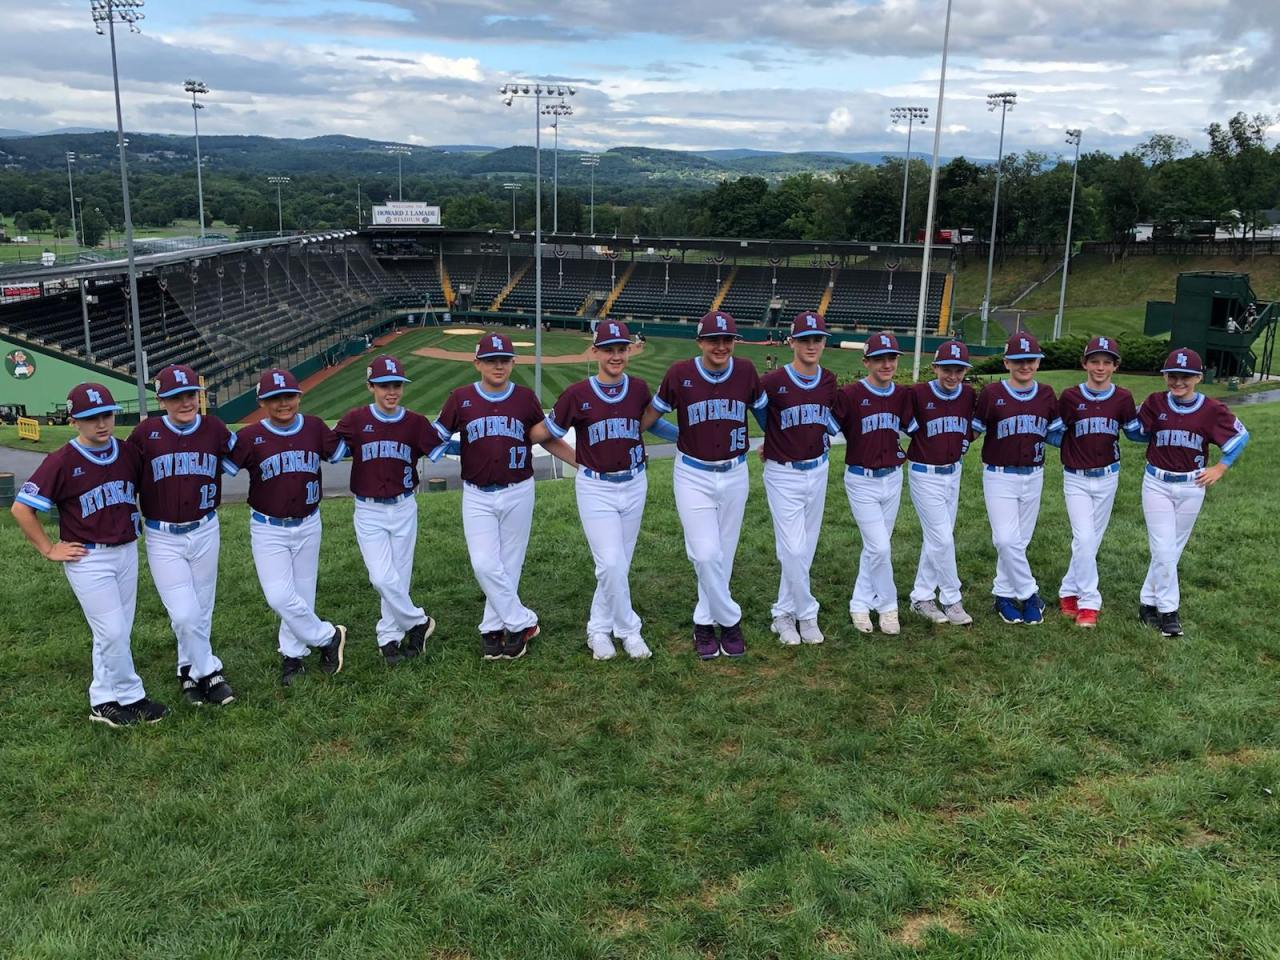 Coventry Little League Baseball Team stands on famous hill overlooking Lamade Stadium at Little League World Series